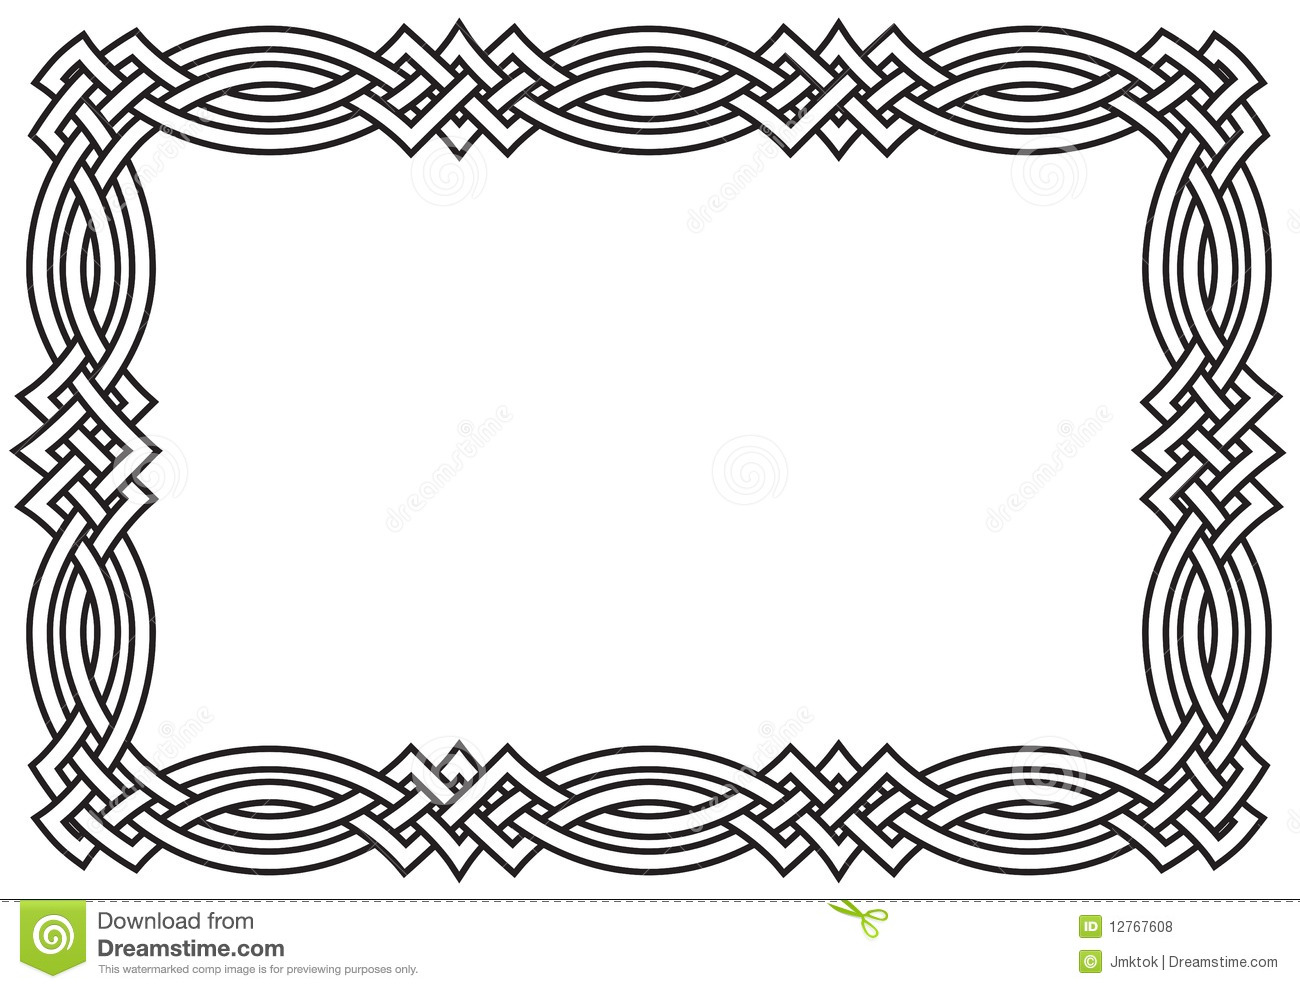 Retro intertwining border for St. Patrick's Day - the woven celtic ...